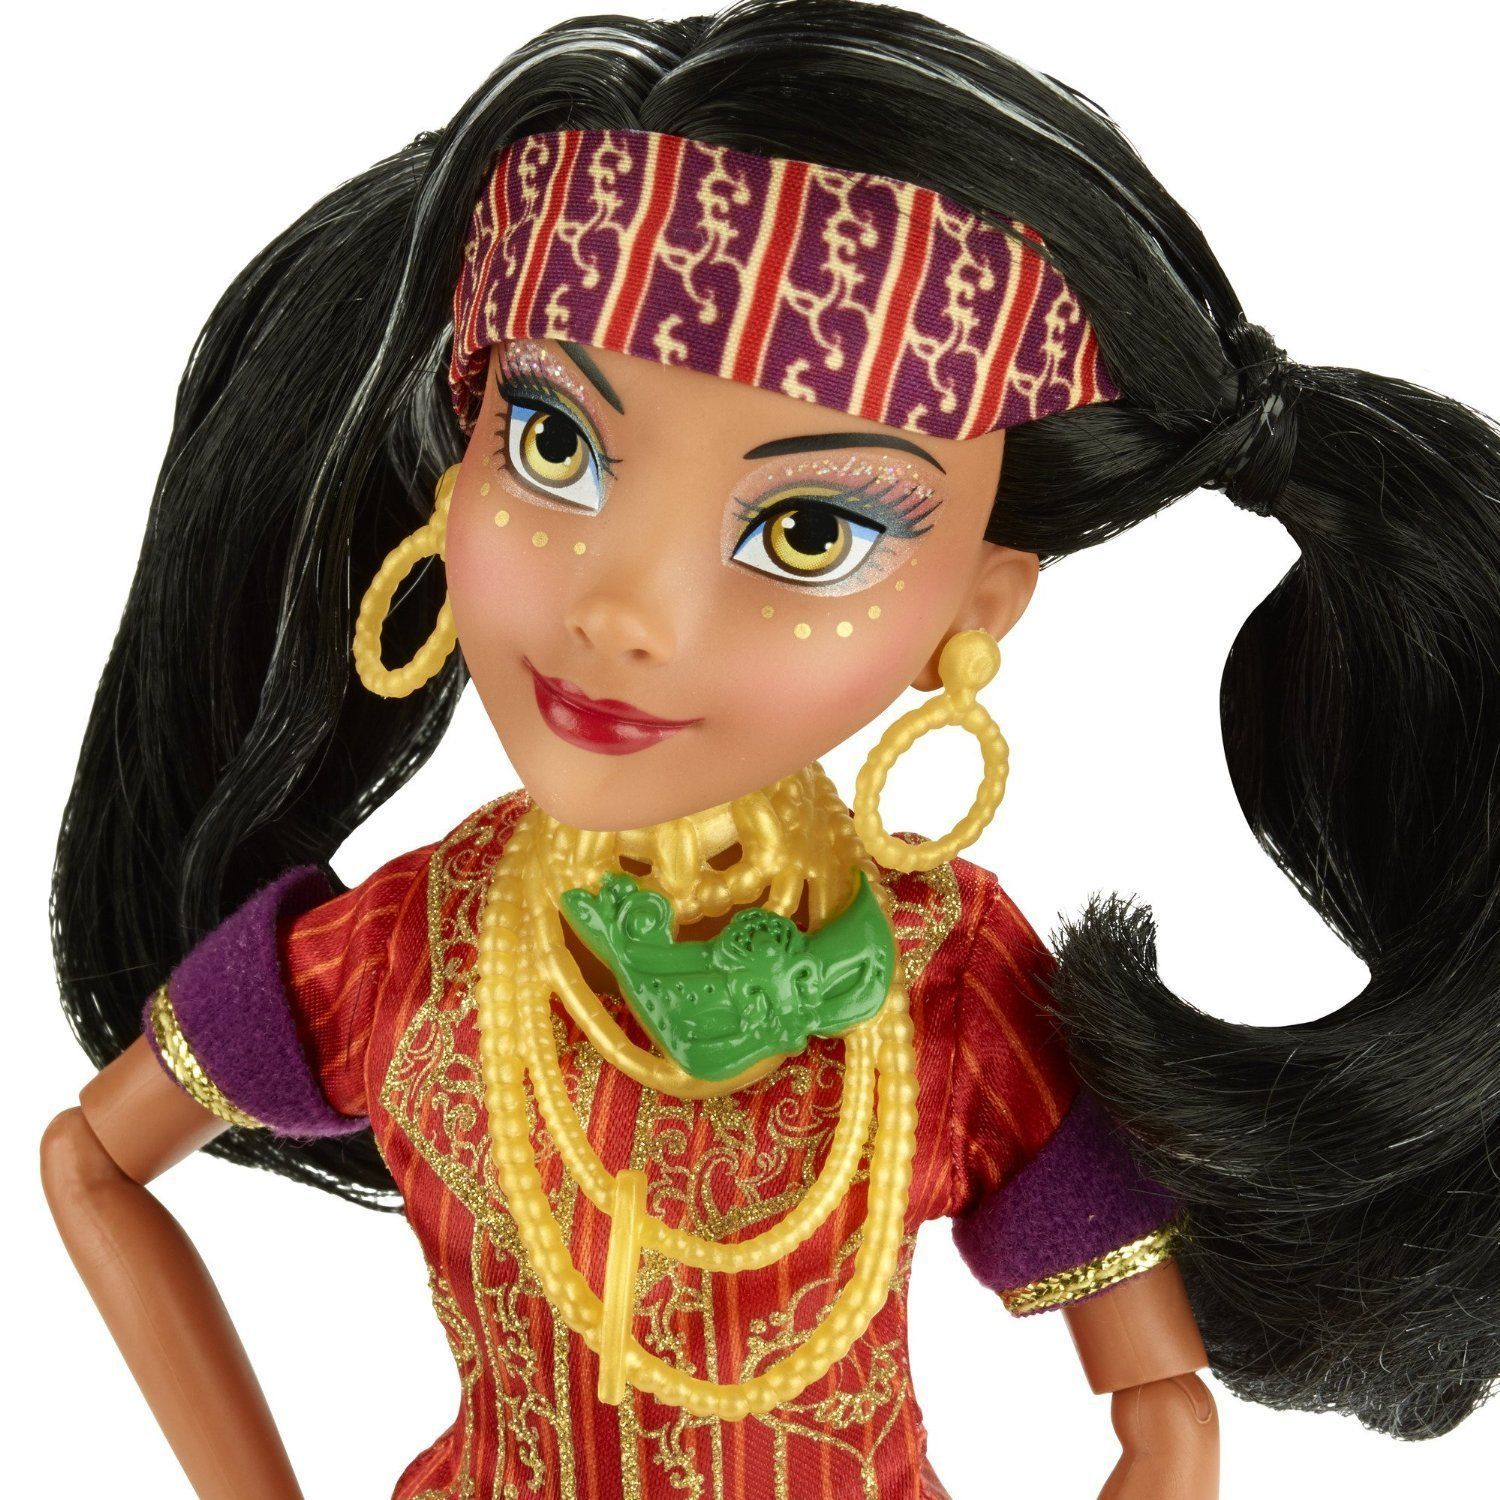 Image 2 of Disney Descendants Villain Genie Chic Freddie IE Doll Isle of the Lost